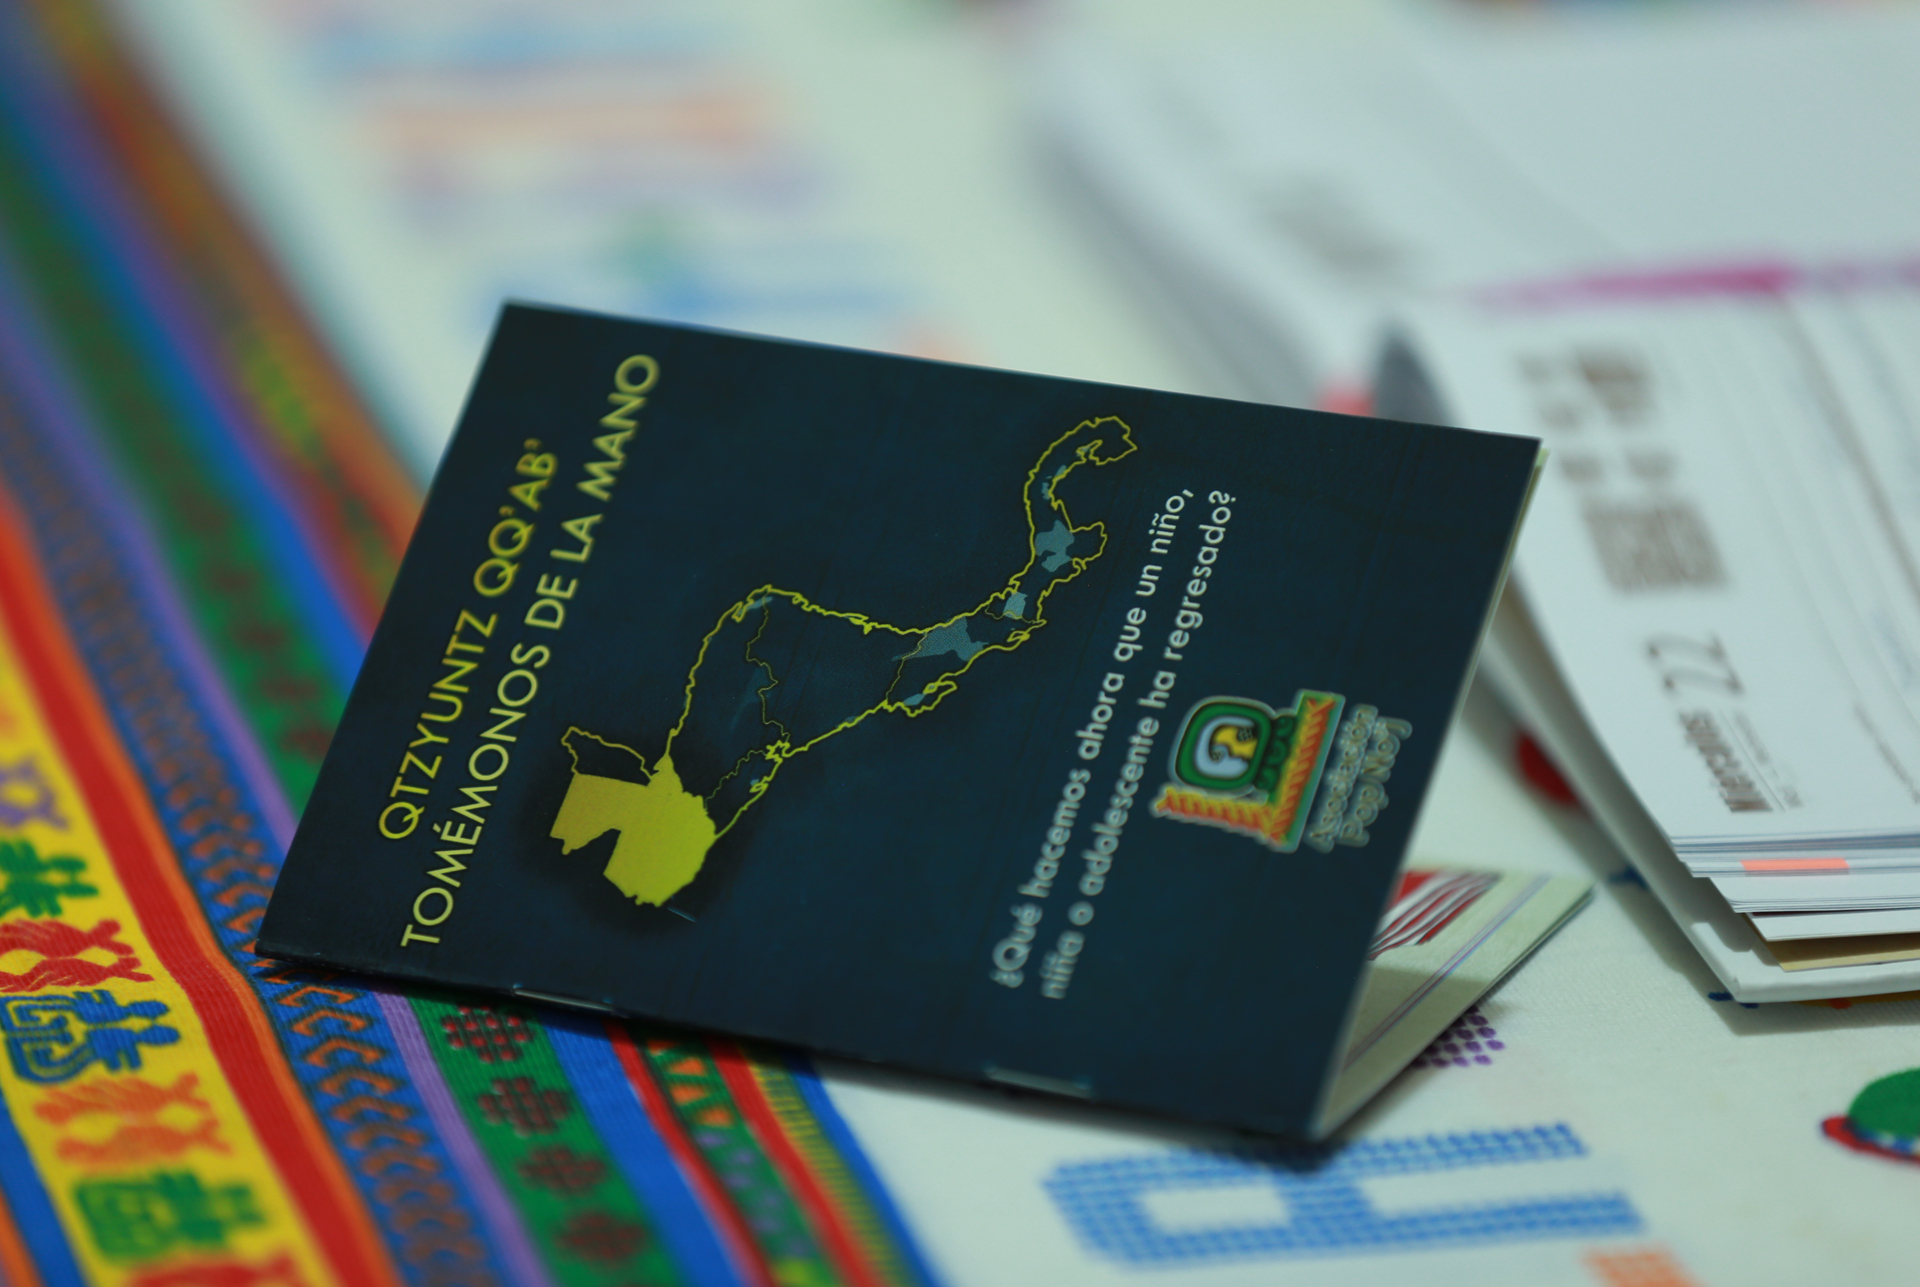 A booklet for deported children with information in Mayan languages, provided by a local NGO, Pop Noj.